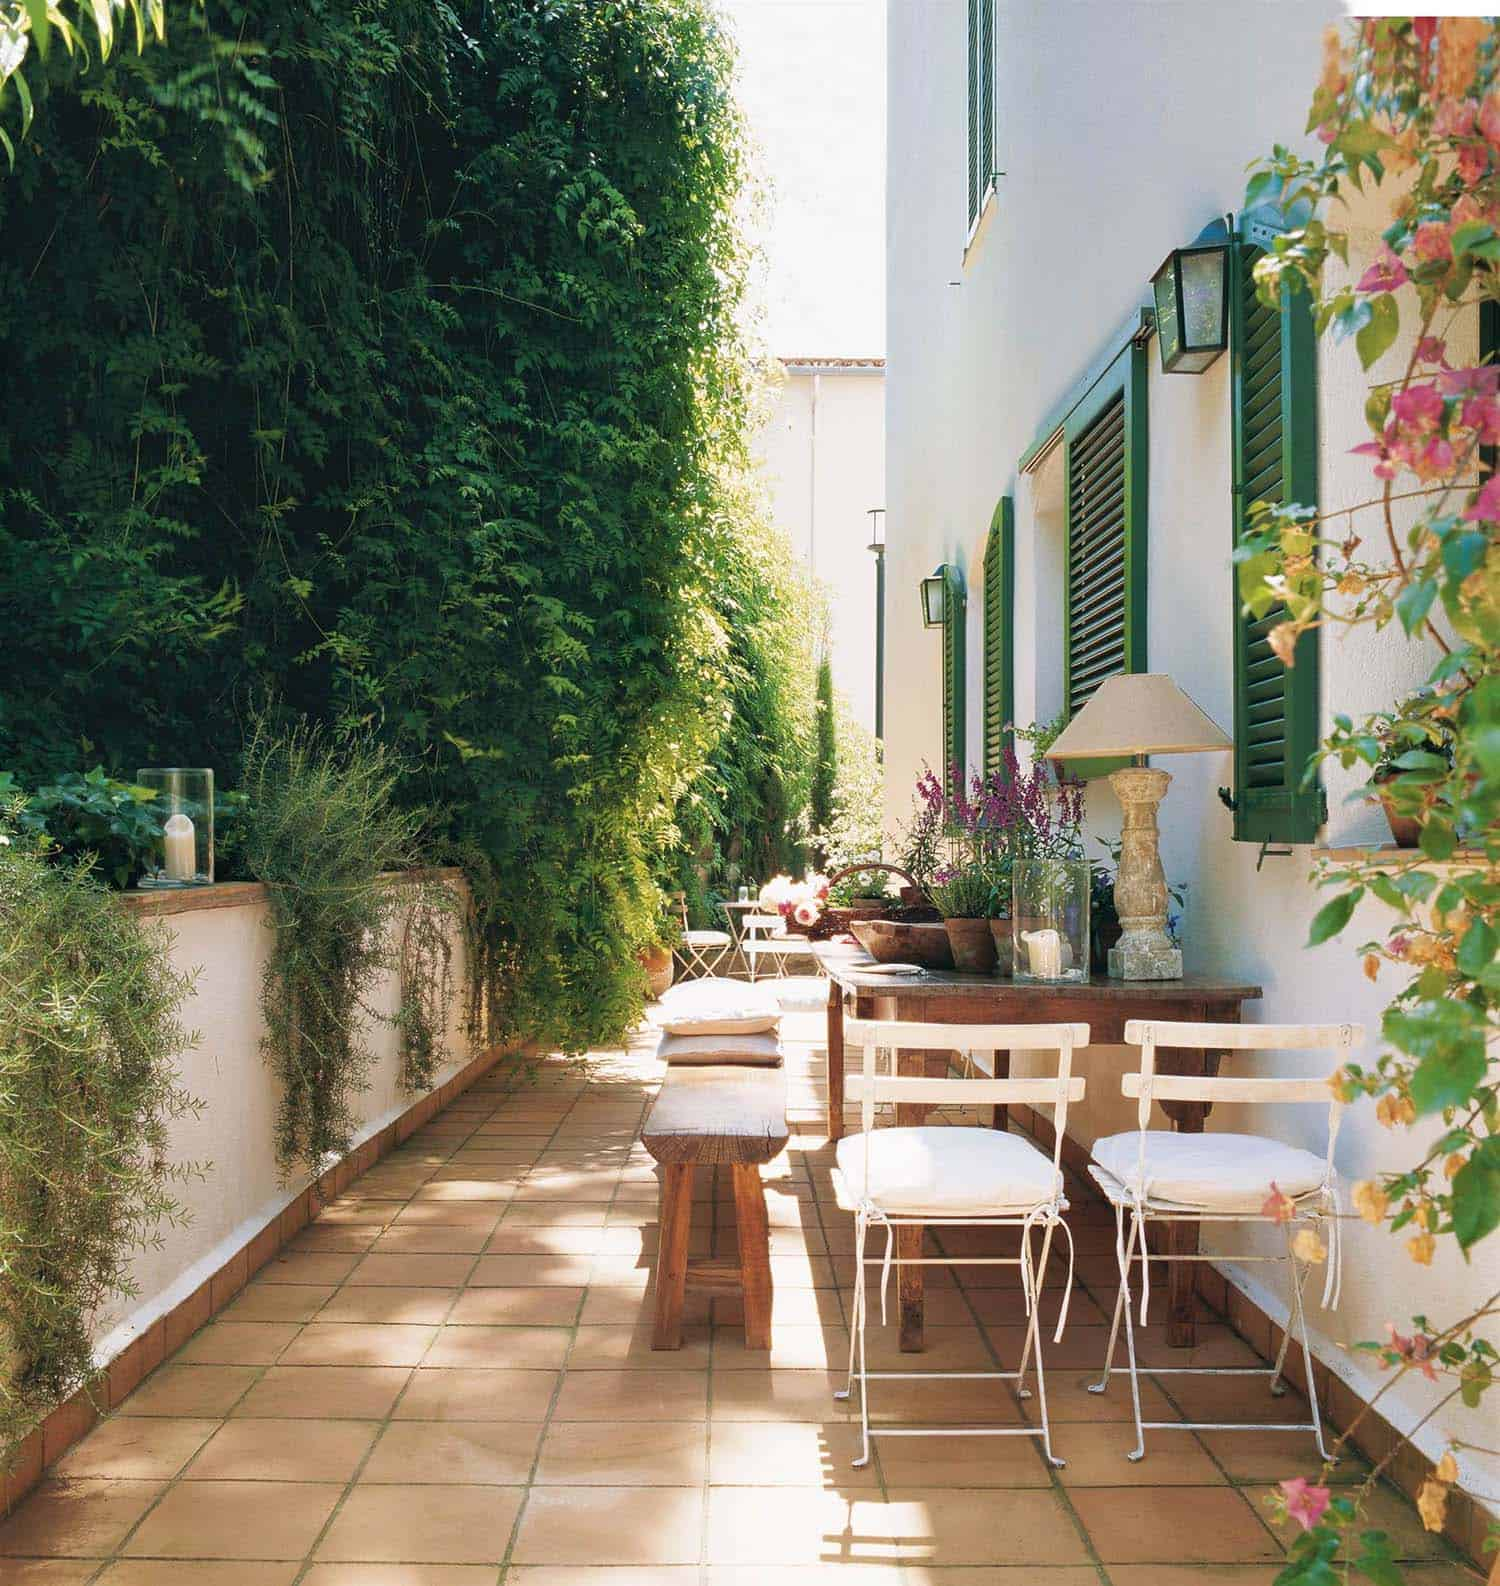 33 Fabulous Ideas For Creating Beautiful Outdoor Living Spaces on Living Spaces Outdoor Dining id=34571